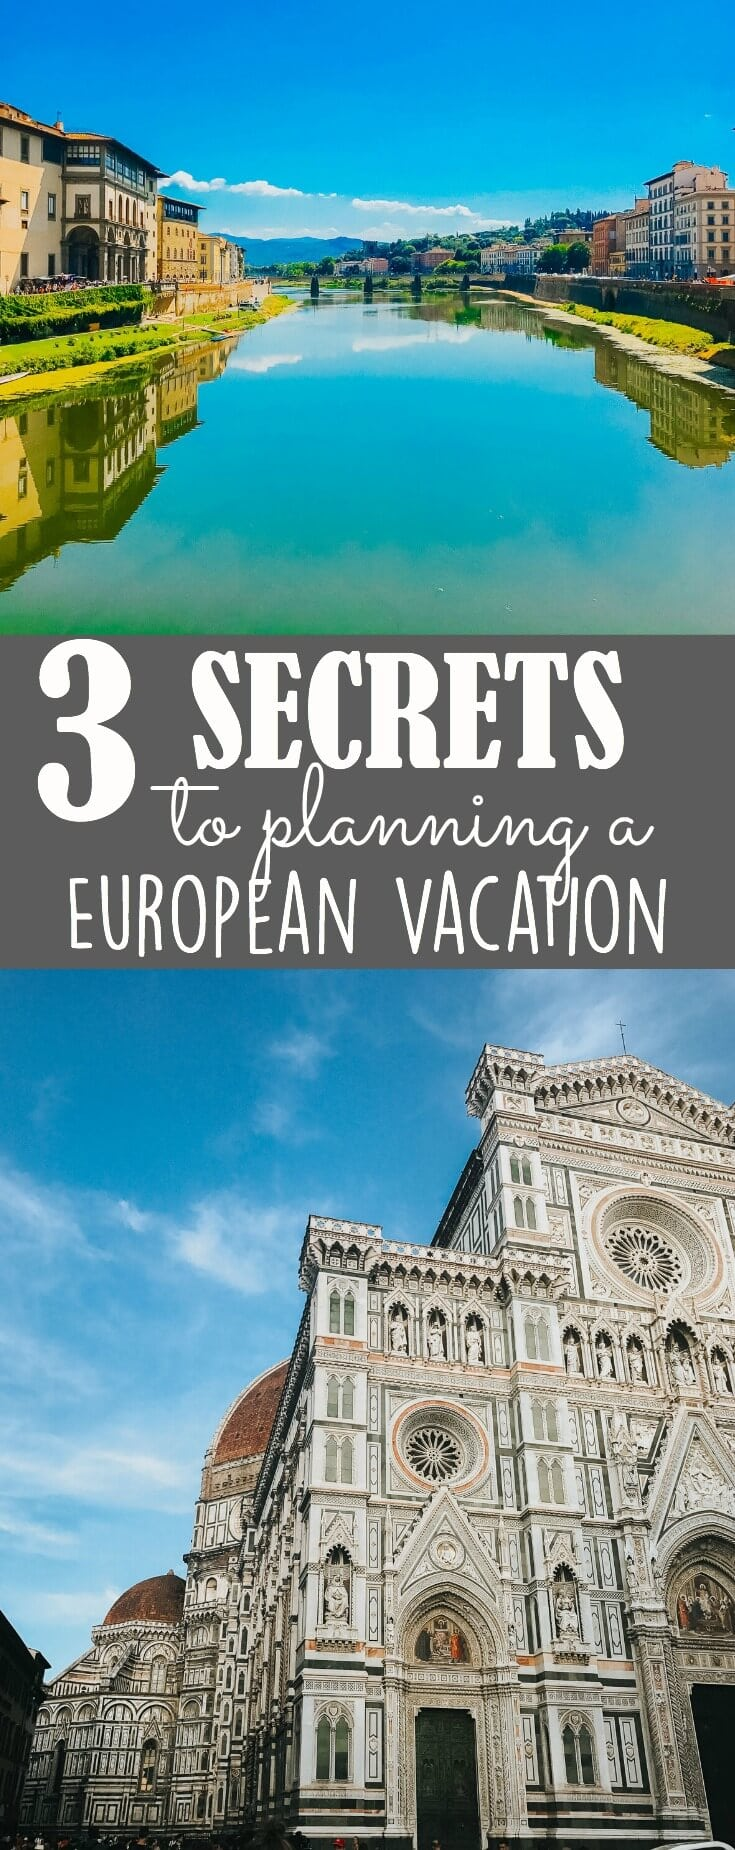 Everyone needs a friend who travels so that they can fill you in on the 3 secrets to planning a European vacation and we are going to be that friend for you.